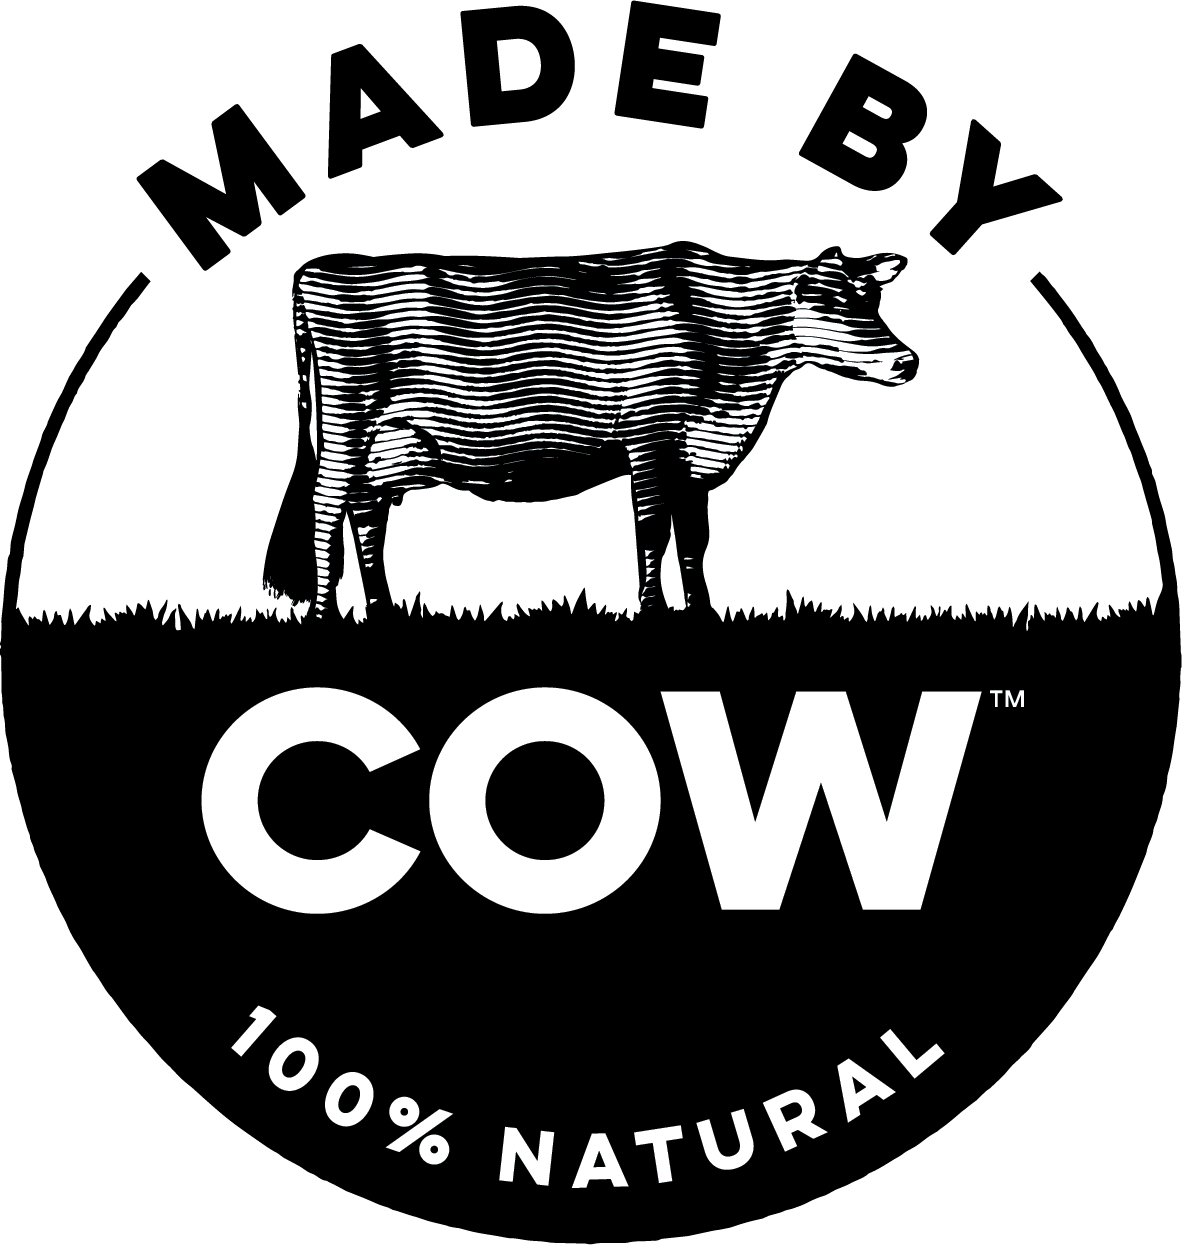 Made By Cow | The World's First Cold Pressed Raw Milk